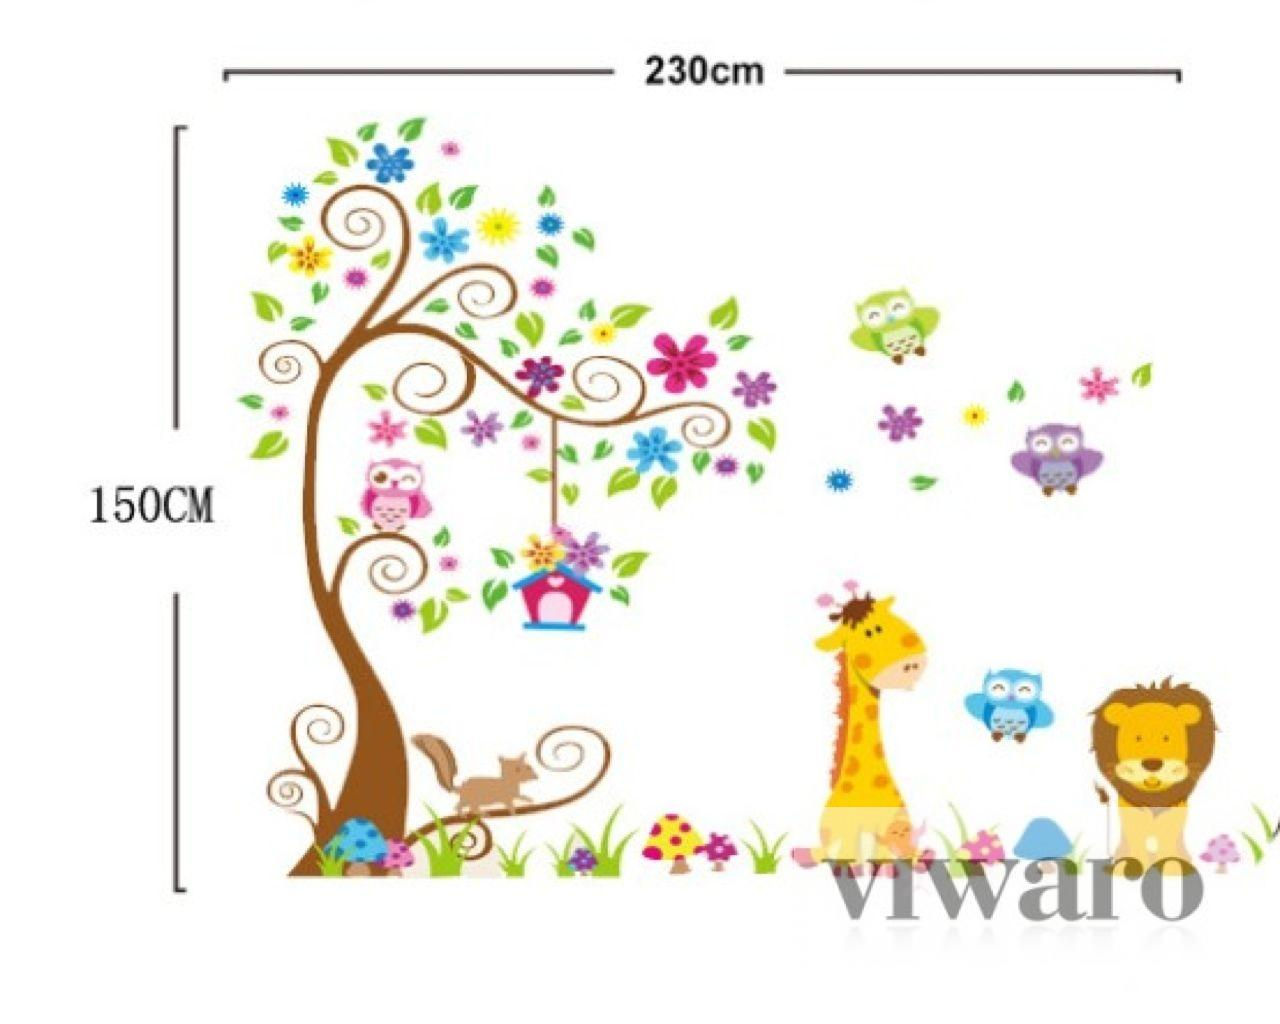 w026 kinderzimmer wandtattoo xxl baum tiere l we eule giraffe dschungel zoo top ebay. Black Bedroom Furniture Sets. Home Design Ideas